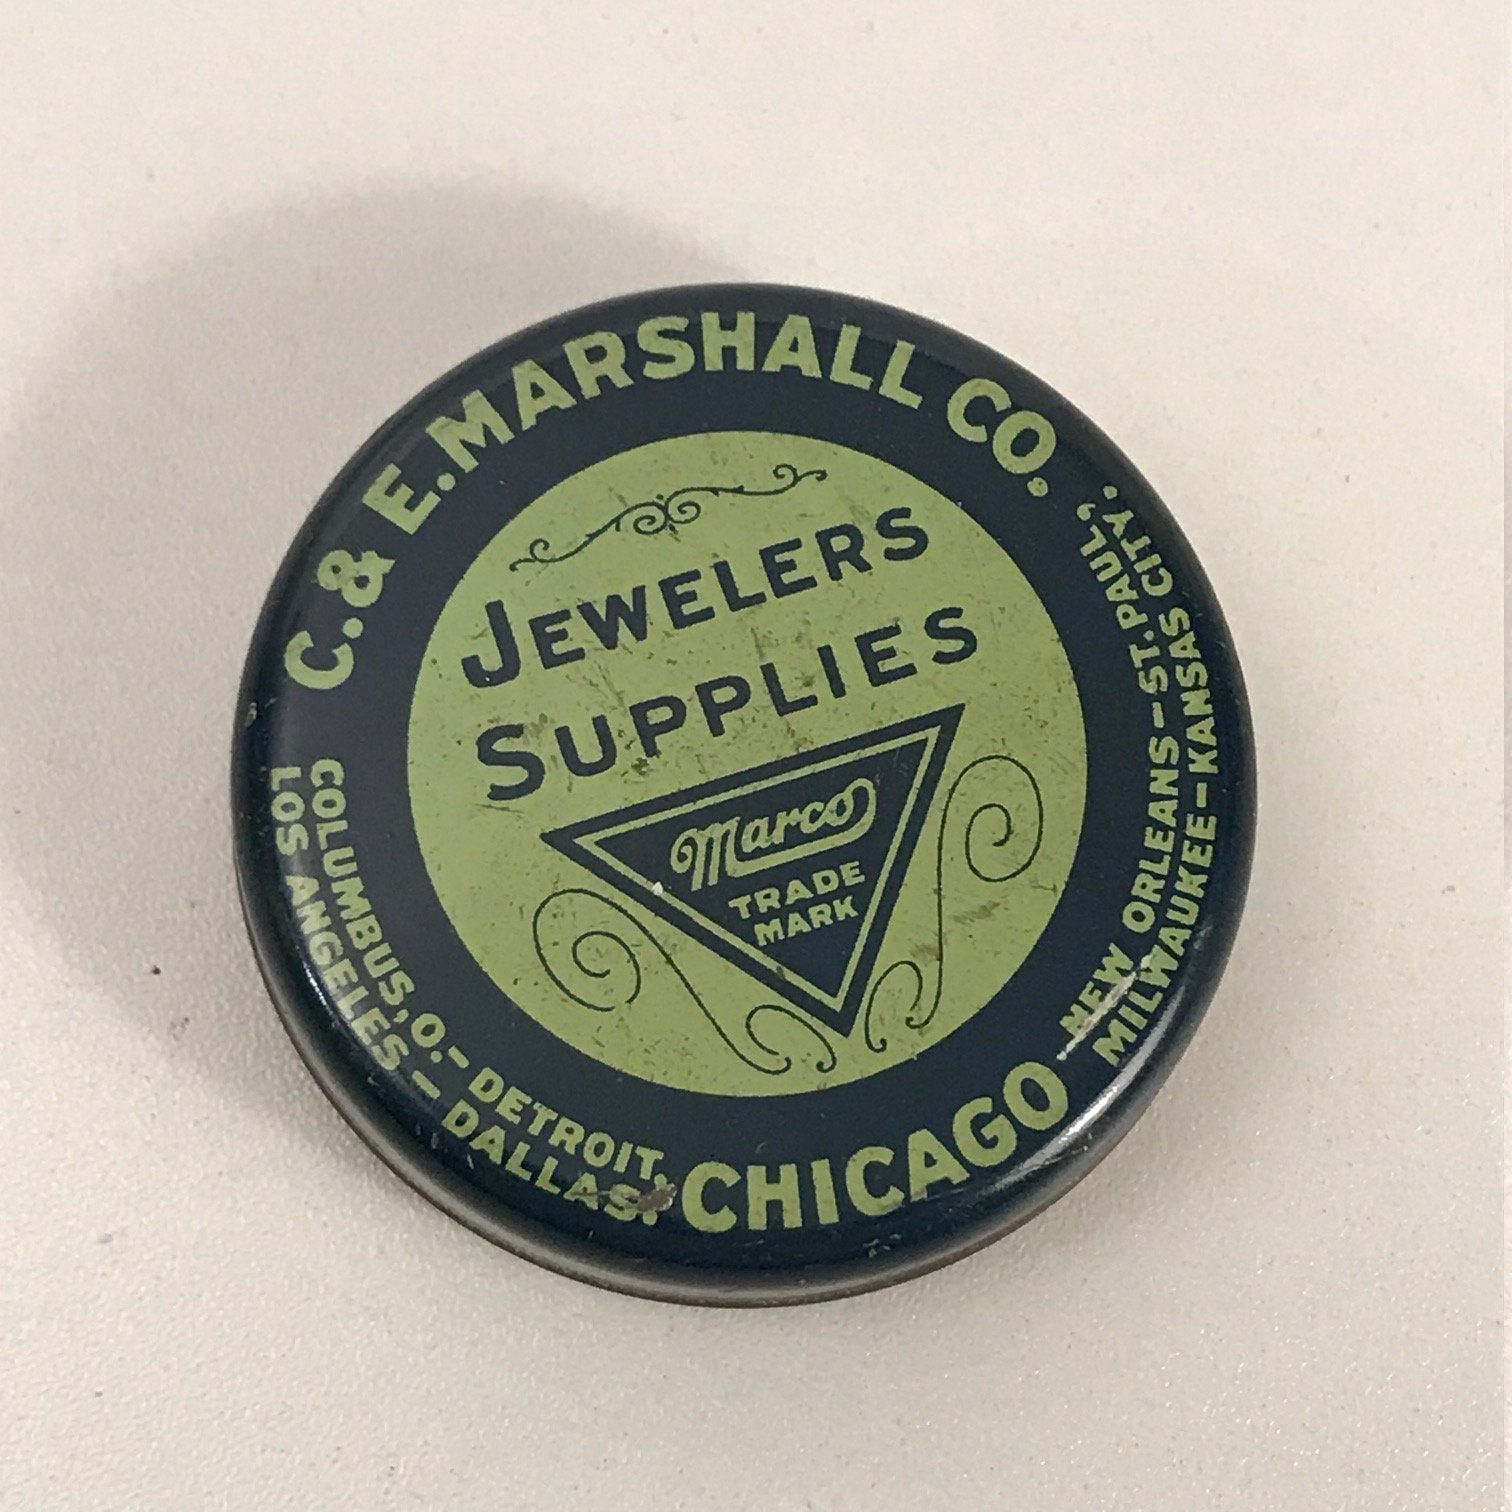 Old Jewelers Supplies Small Round Retail Tin C E Marshall Etsy Etsy Supplies Chicago Il